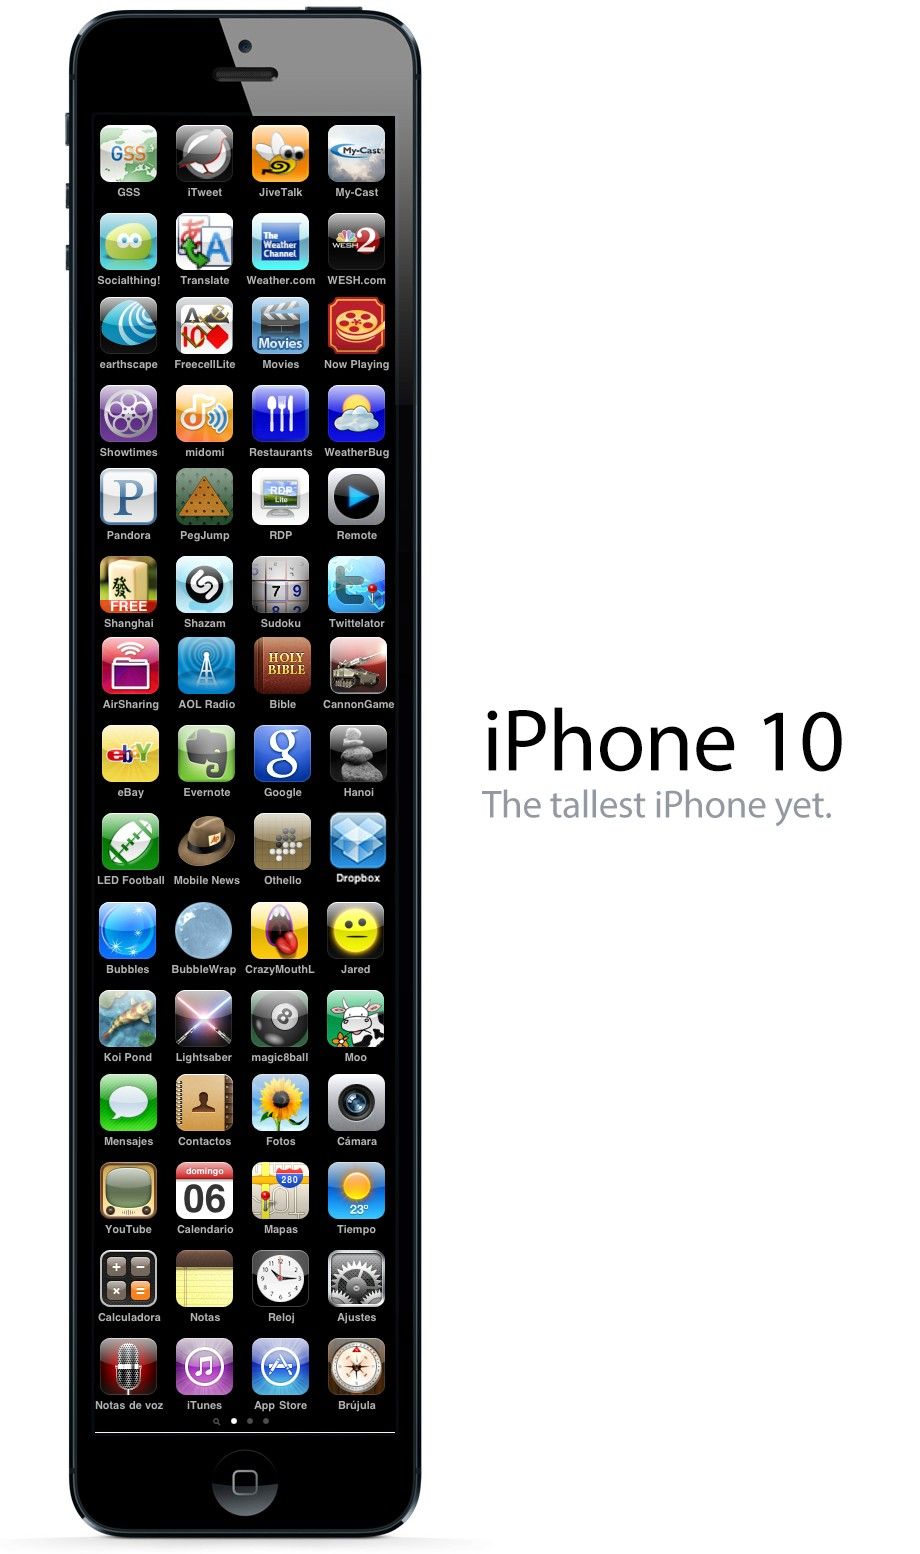 iPhone-10.jpeg